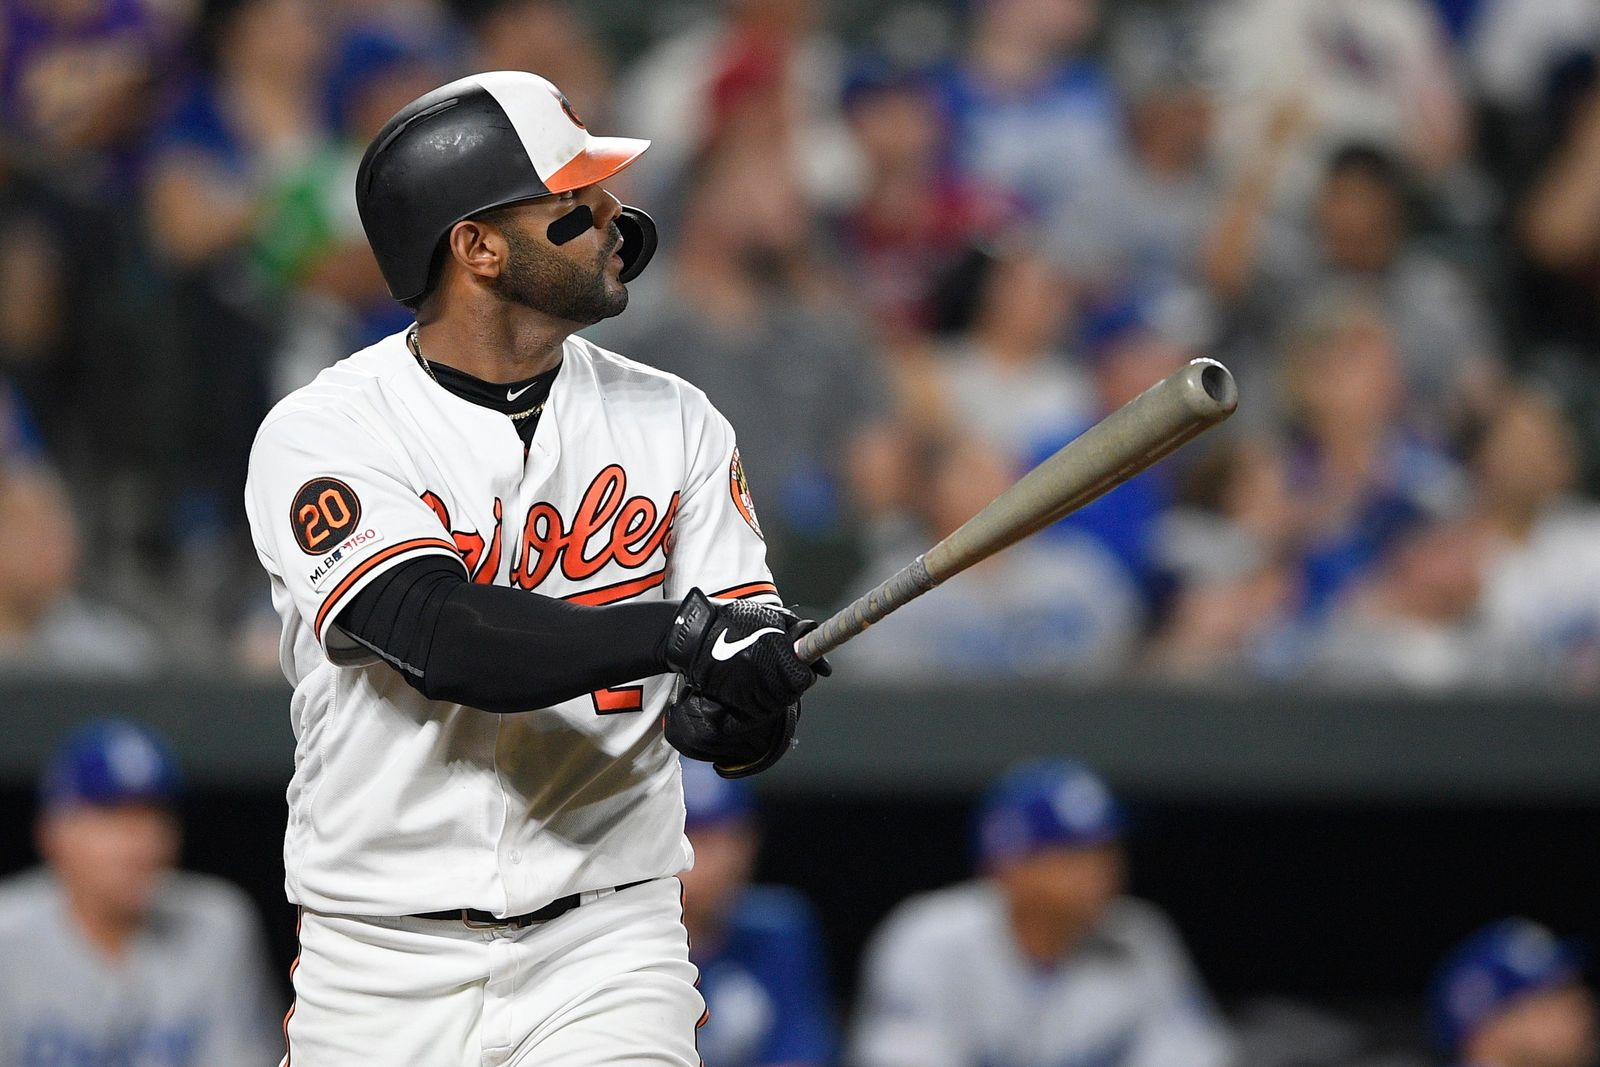 Baltimore Orioles' Jonathan Villar watches his three-run home run during the seventh inning of a baseball game against the Los Angeles Dodgers on Wednesday, Sept. 11, 2019, in Baltimore. The Orioles won 7-3. (AP Photo/Nick Wass)